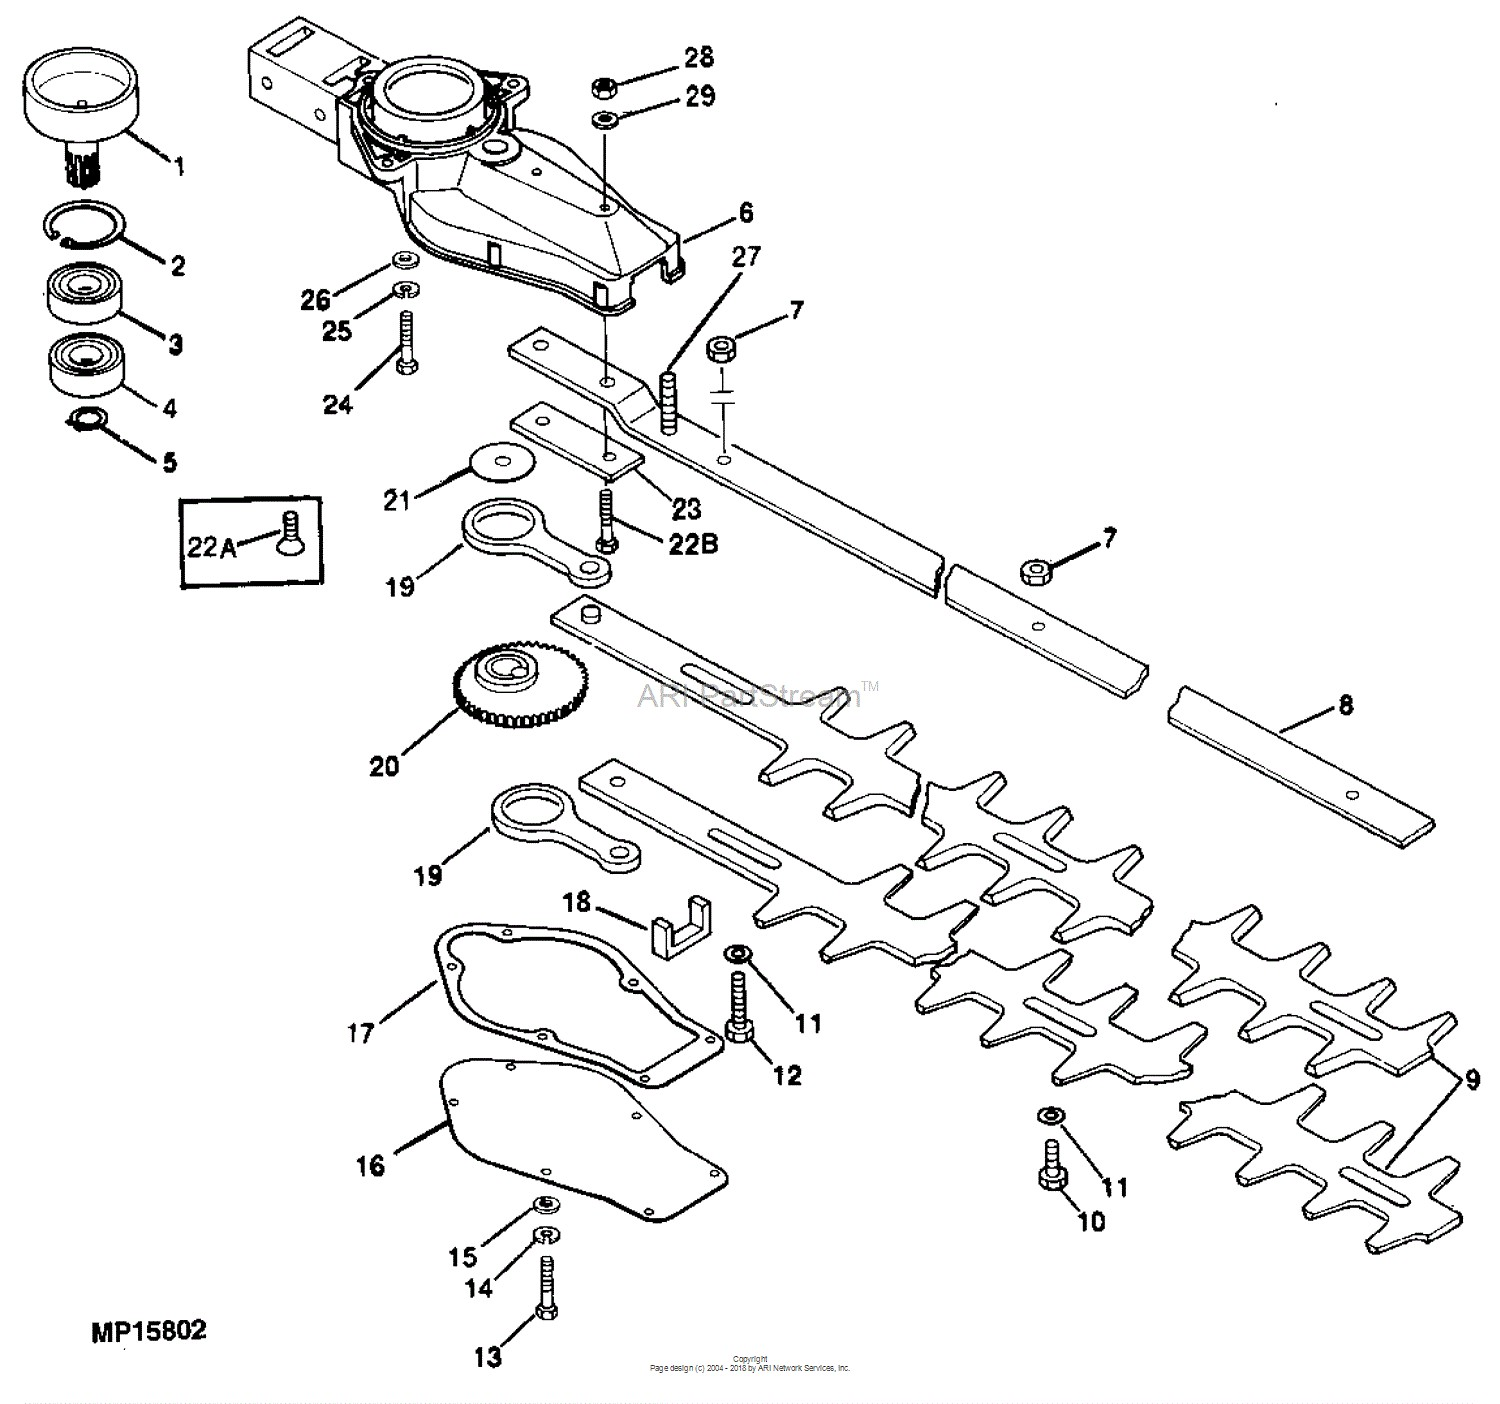 Flywheel Clutch Diagram John Deere Parts Diagrams John Deere 162 Hedge Trimmer Pc2119 Of Flywheel Clutch Diagram